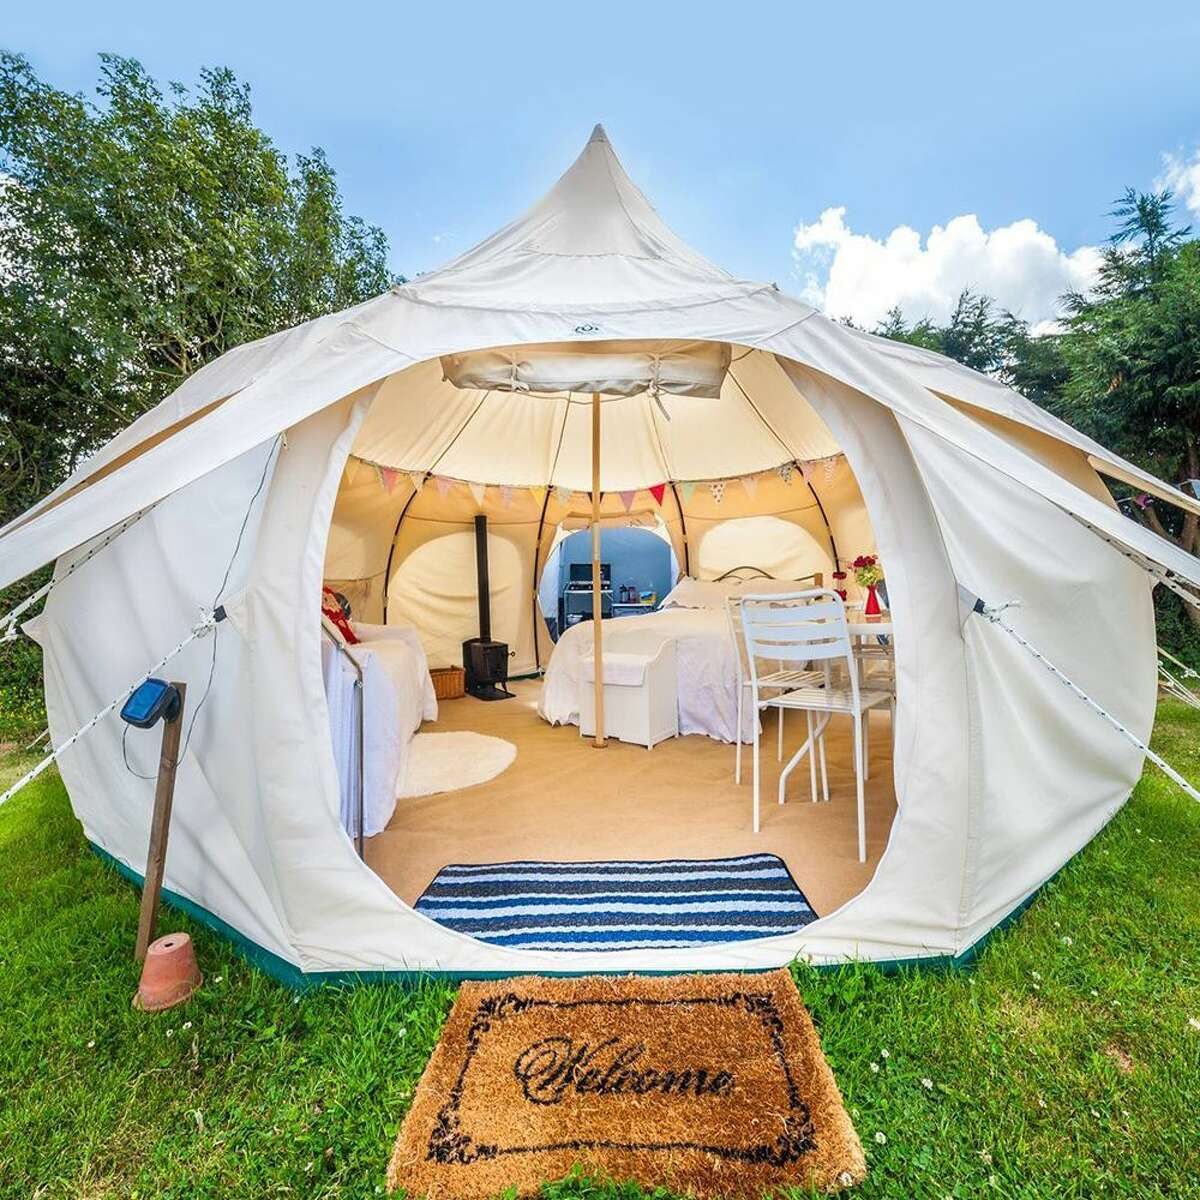 Outdoor Living Made Fancy With These 8 Glamping Tents on Fancy Outdoor Living id=68018